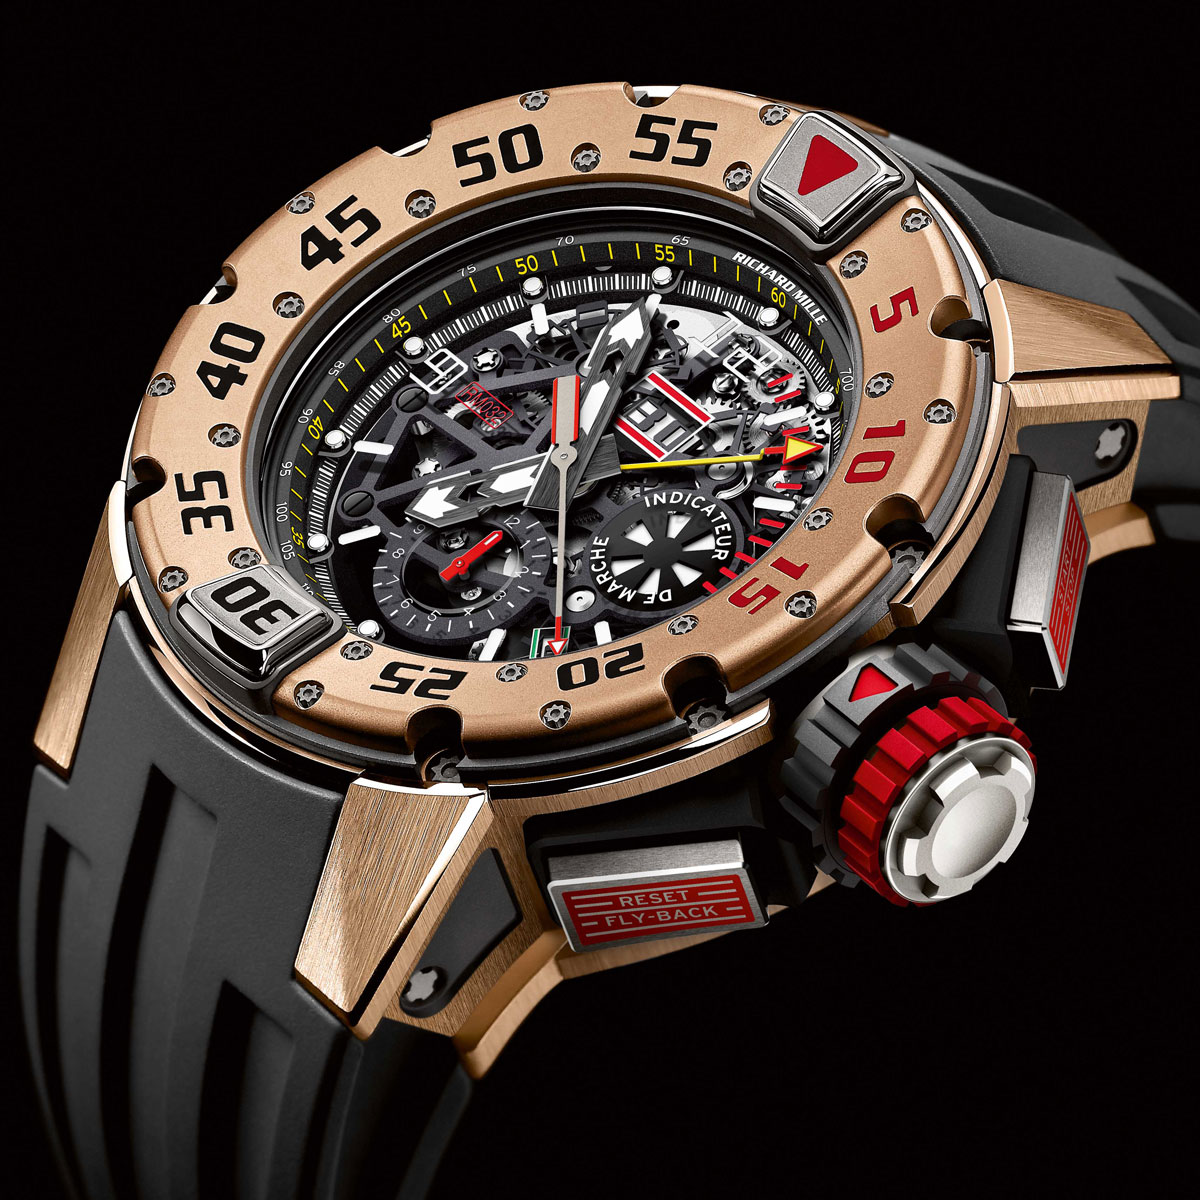 The Watch Quote: Photo - The Richard Mille Automatic Chronograph RM 032 Diver's watch